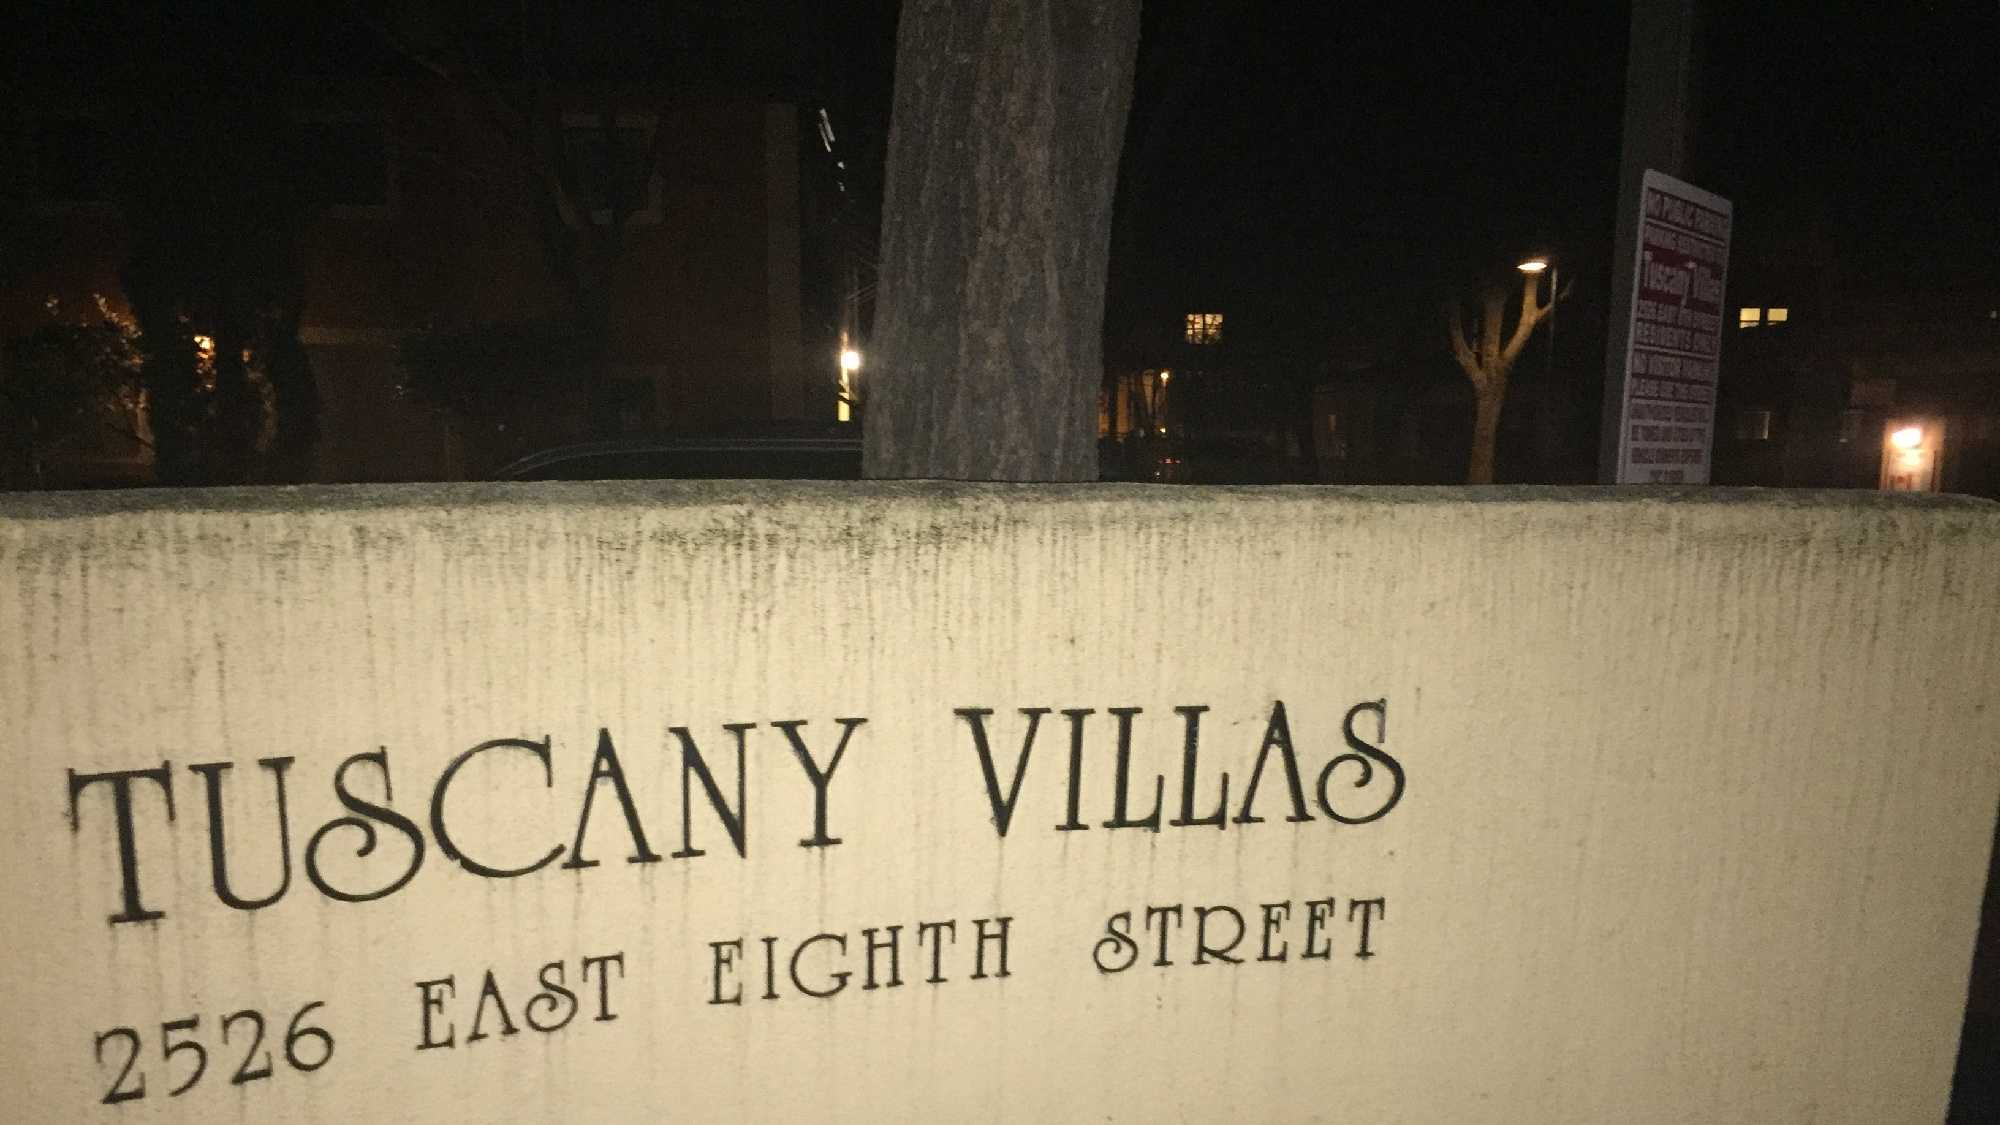 Davis property manager of Tuscany Villas, William Raymond Stanley Jr. is facing multiple identity theft and fraud charges, police said.